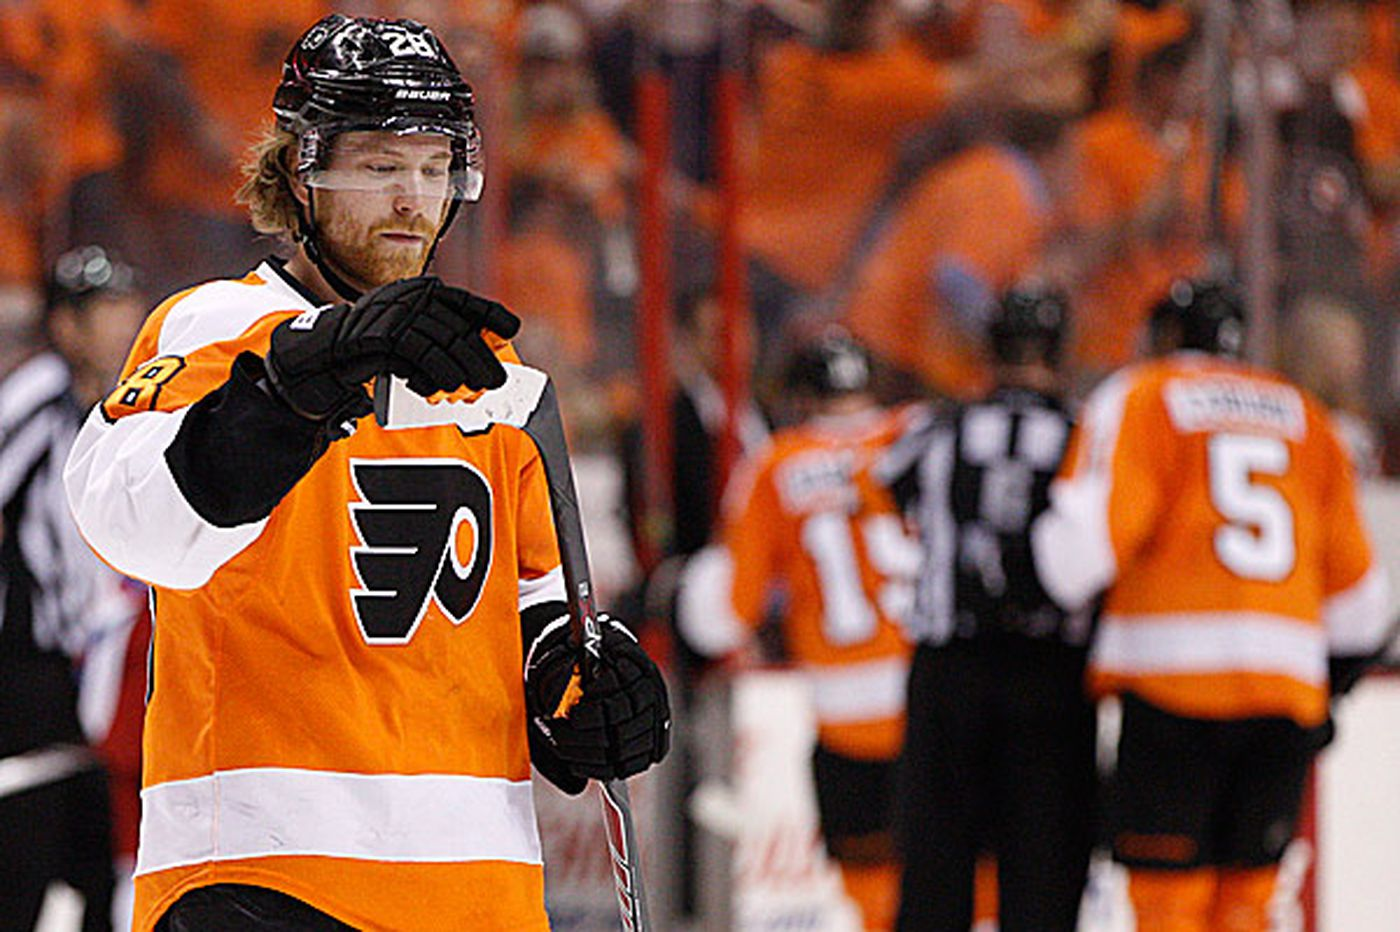 Giroux not leading the way a captain should